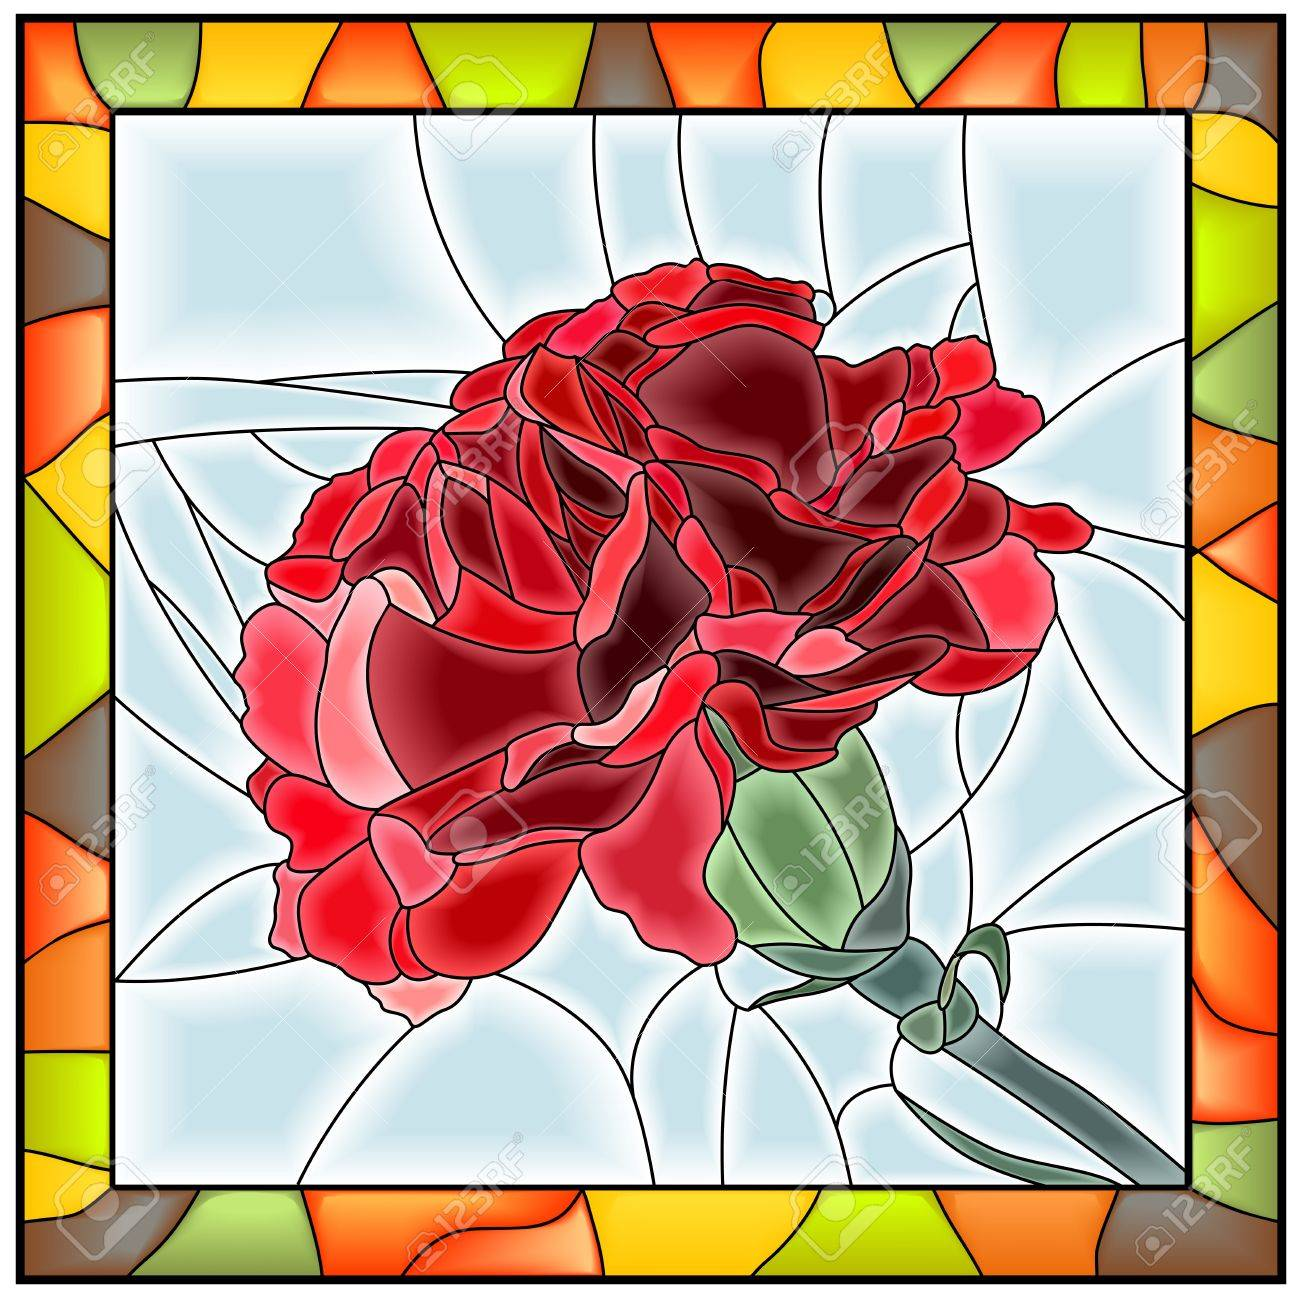 Vector Illustration Of Flower Red Carnation Stained Glass Window With Frame Stock